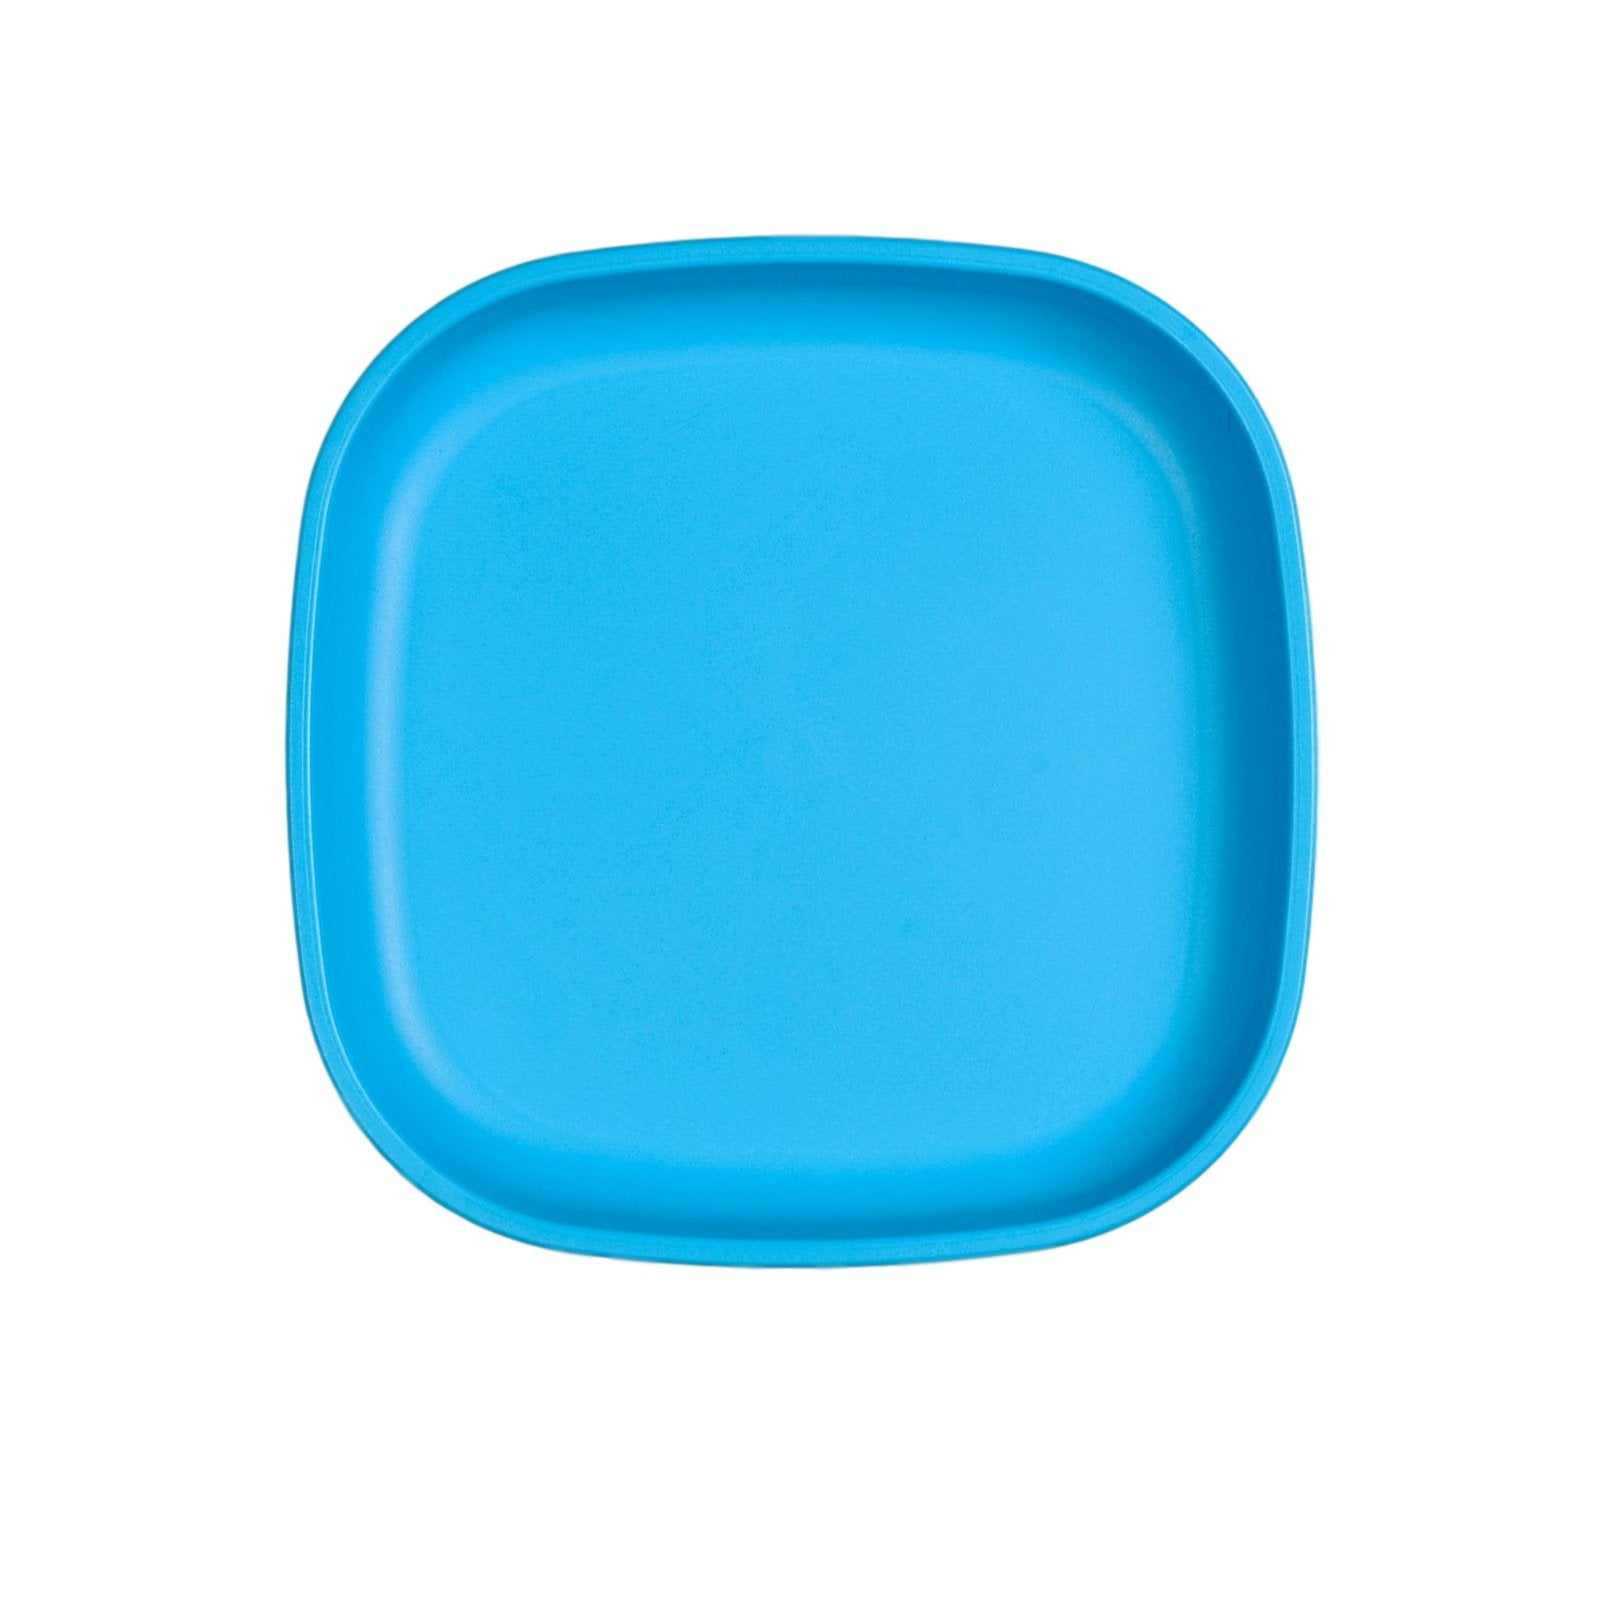 Replay Large Plate Replay Dinnerware Sky Blue at Little Earth Nest Eco Shop